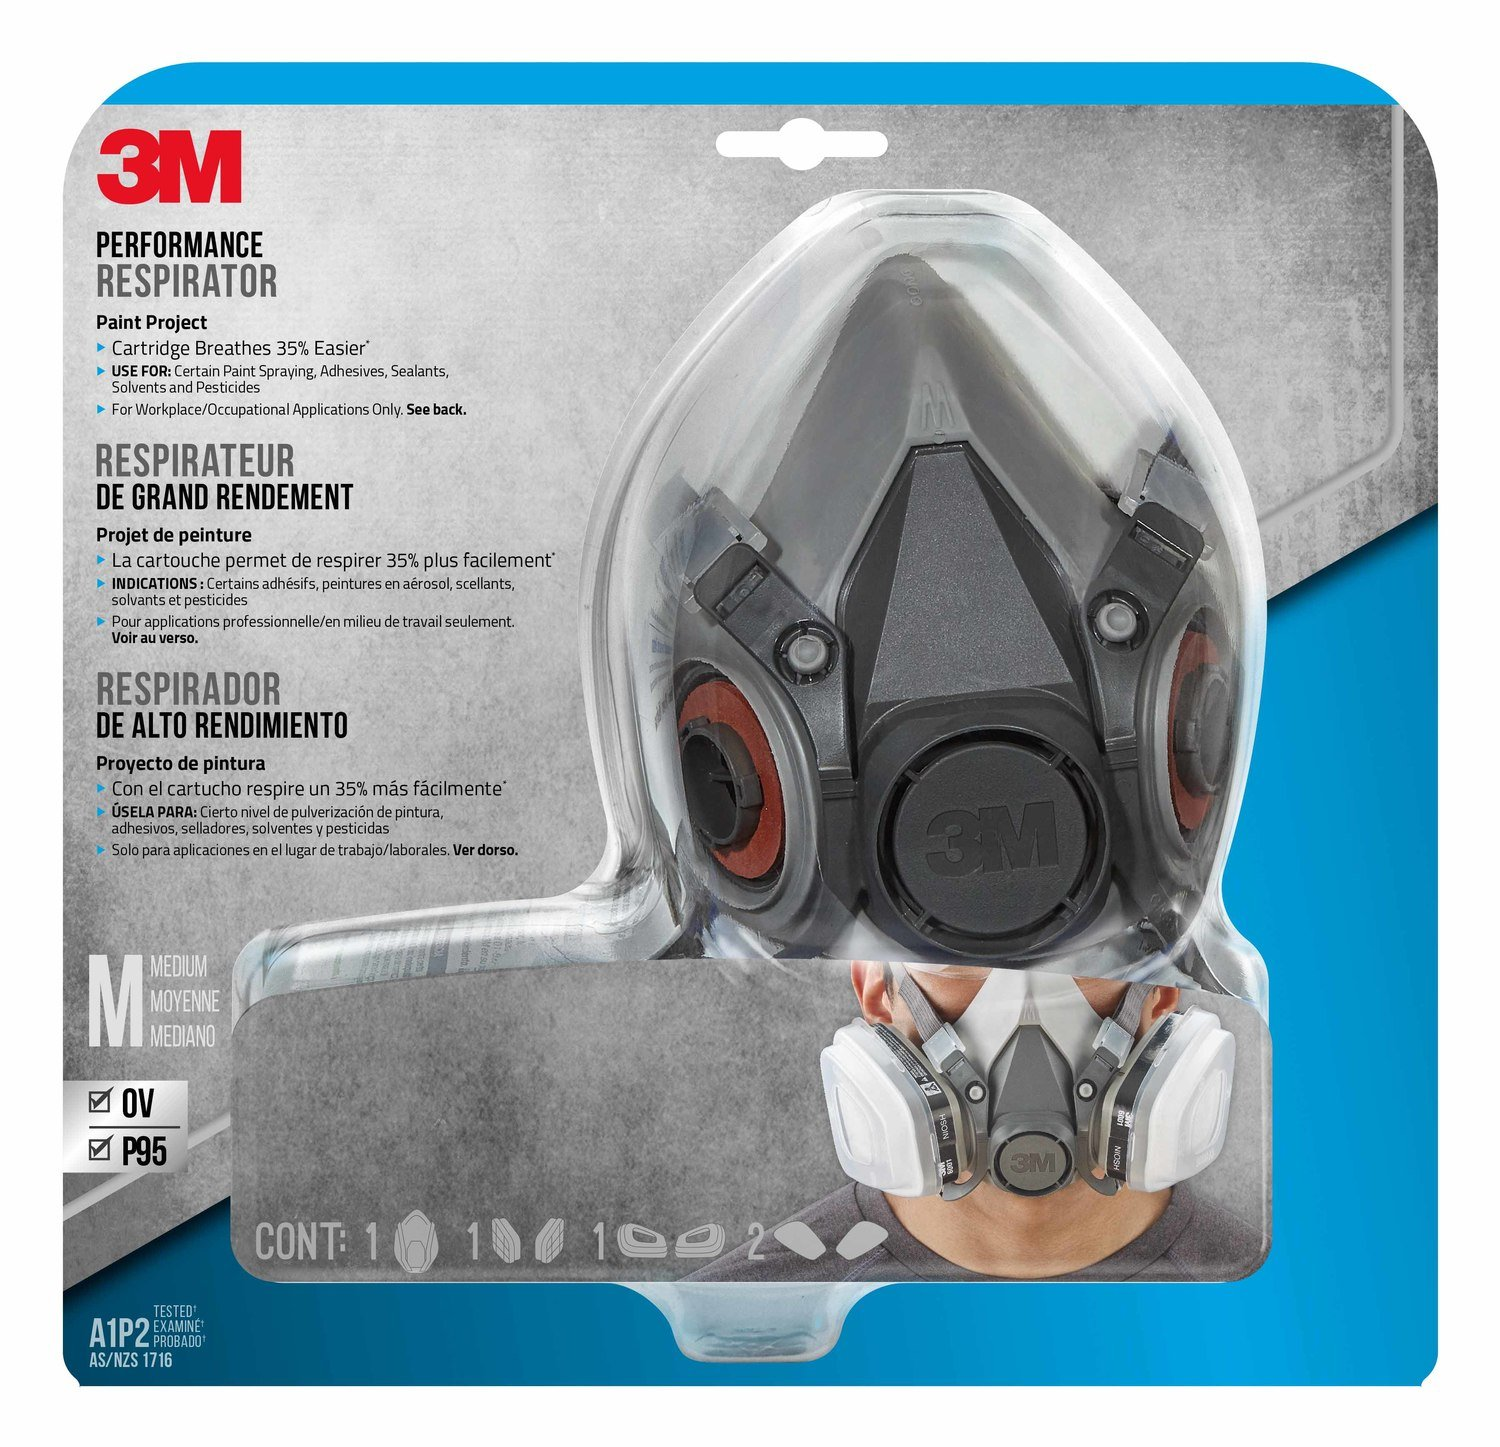 3M Paint Project Respirator, Medium - R6211 by 3M Safety